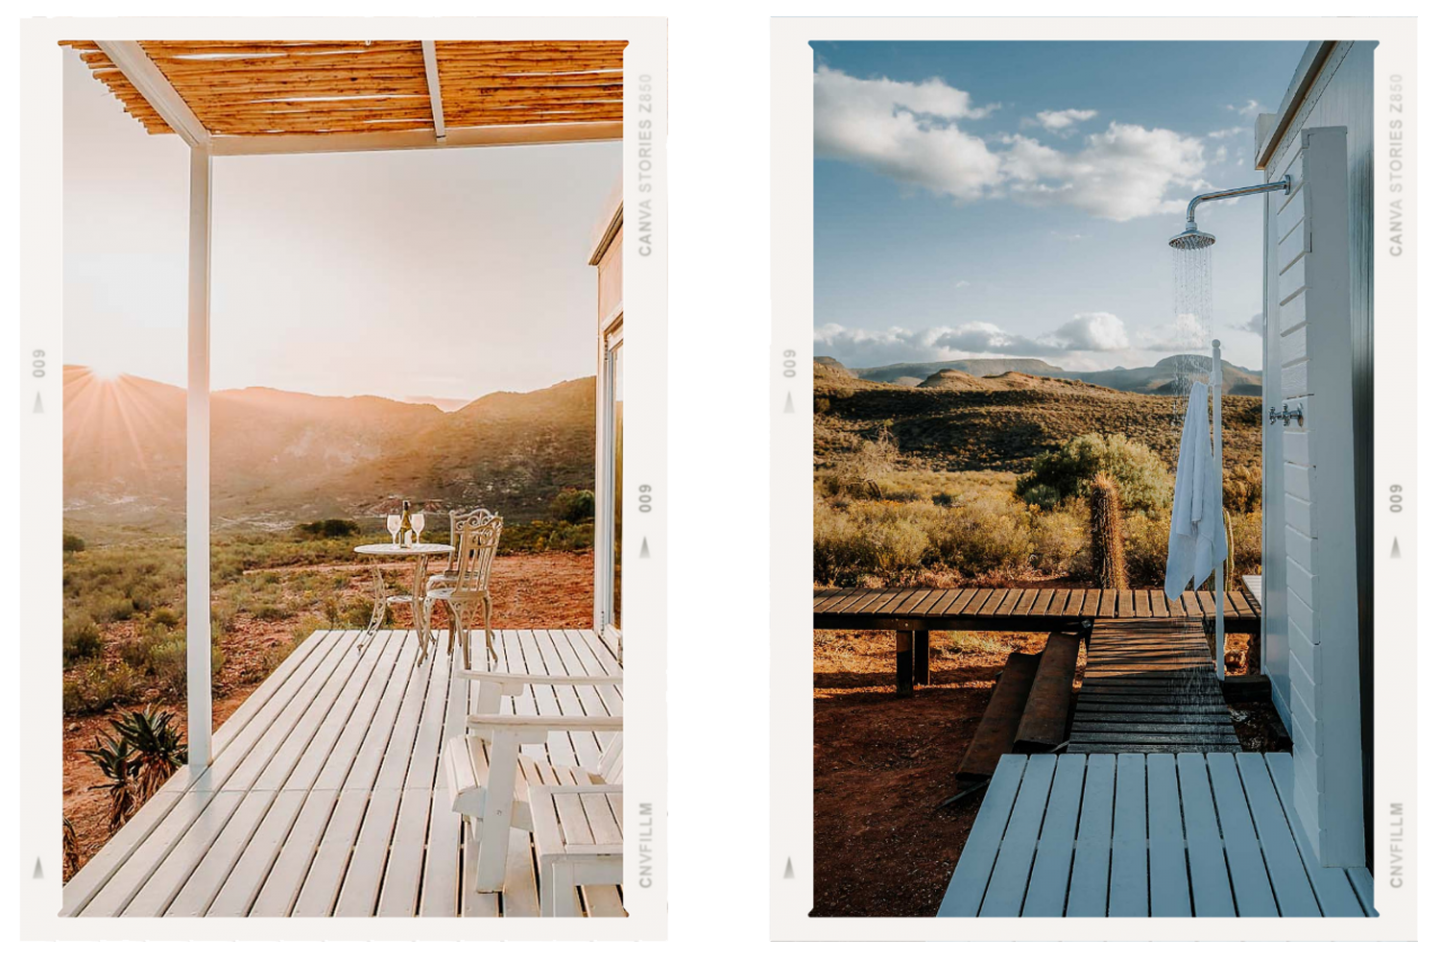 karoo-romantic-airbnbs-in-south-africa